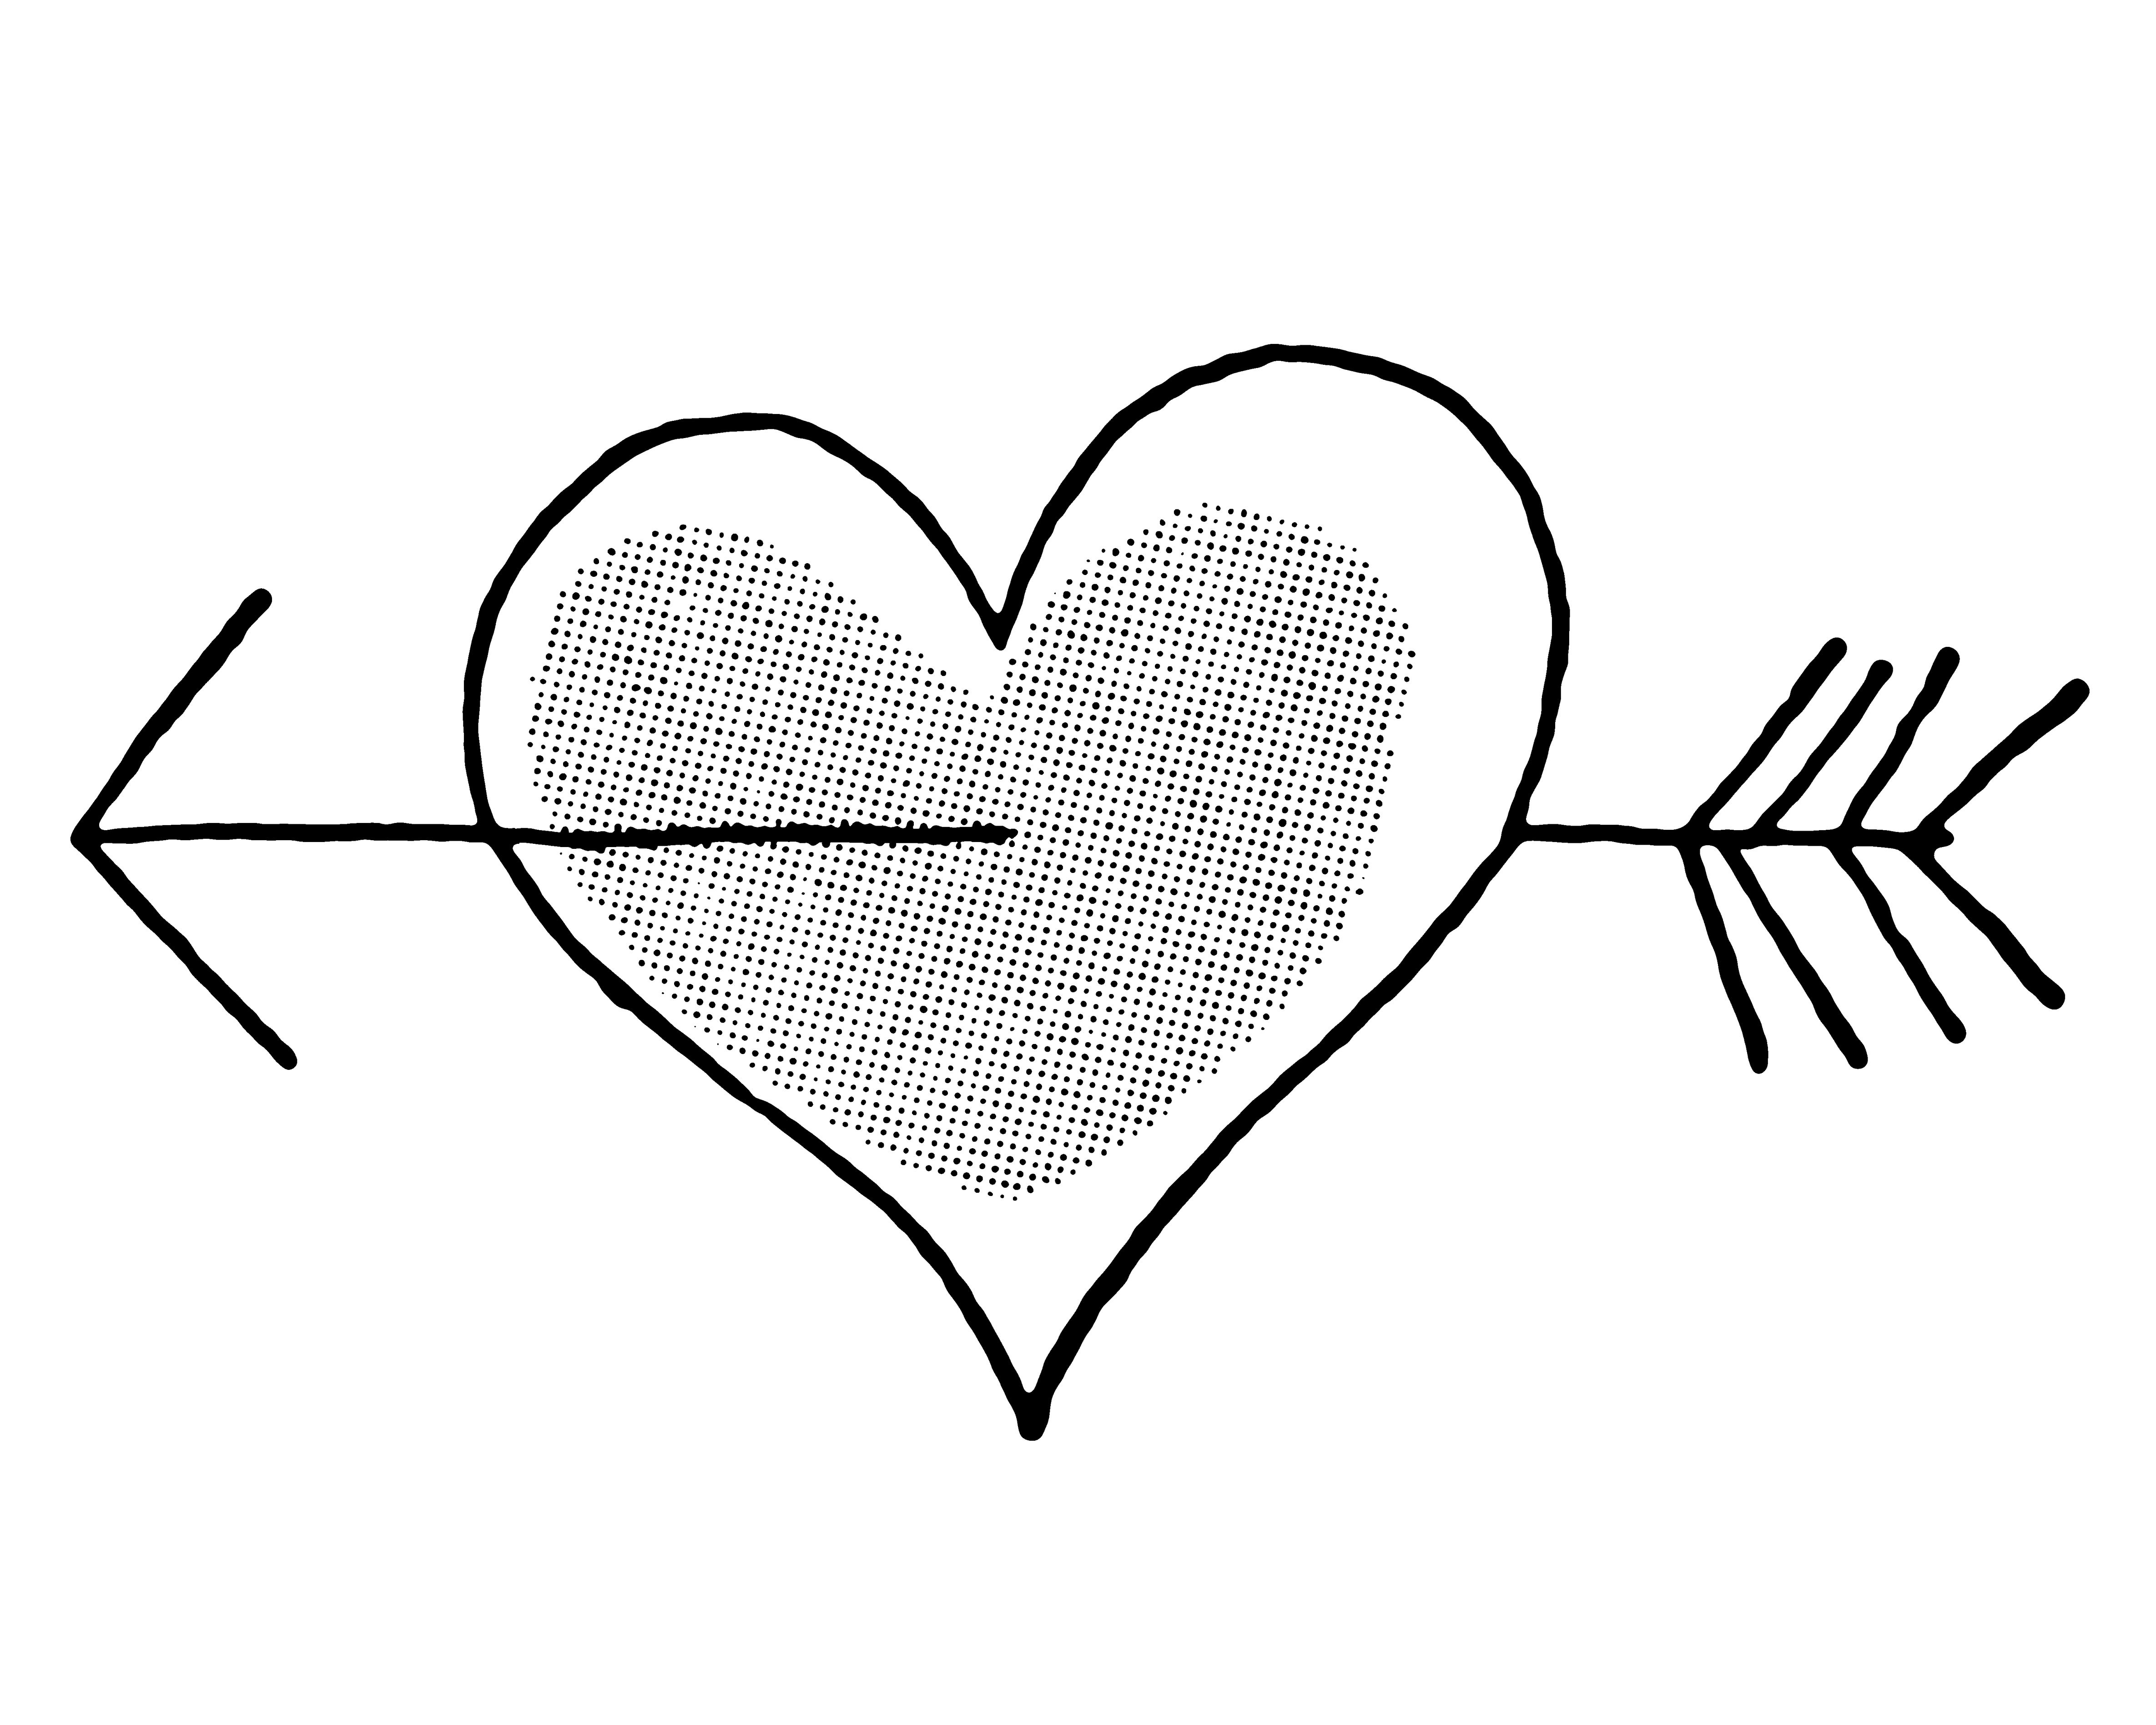 Heart symbols and meaning in art and drawing biocorpaavc